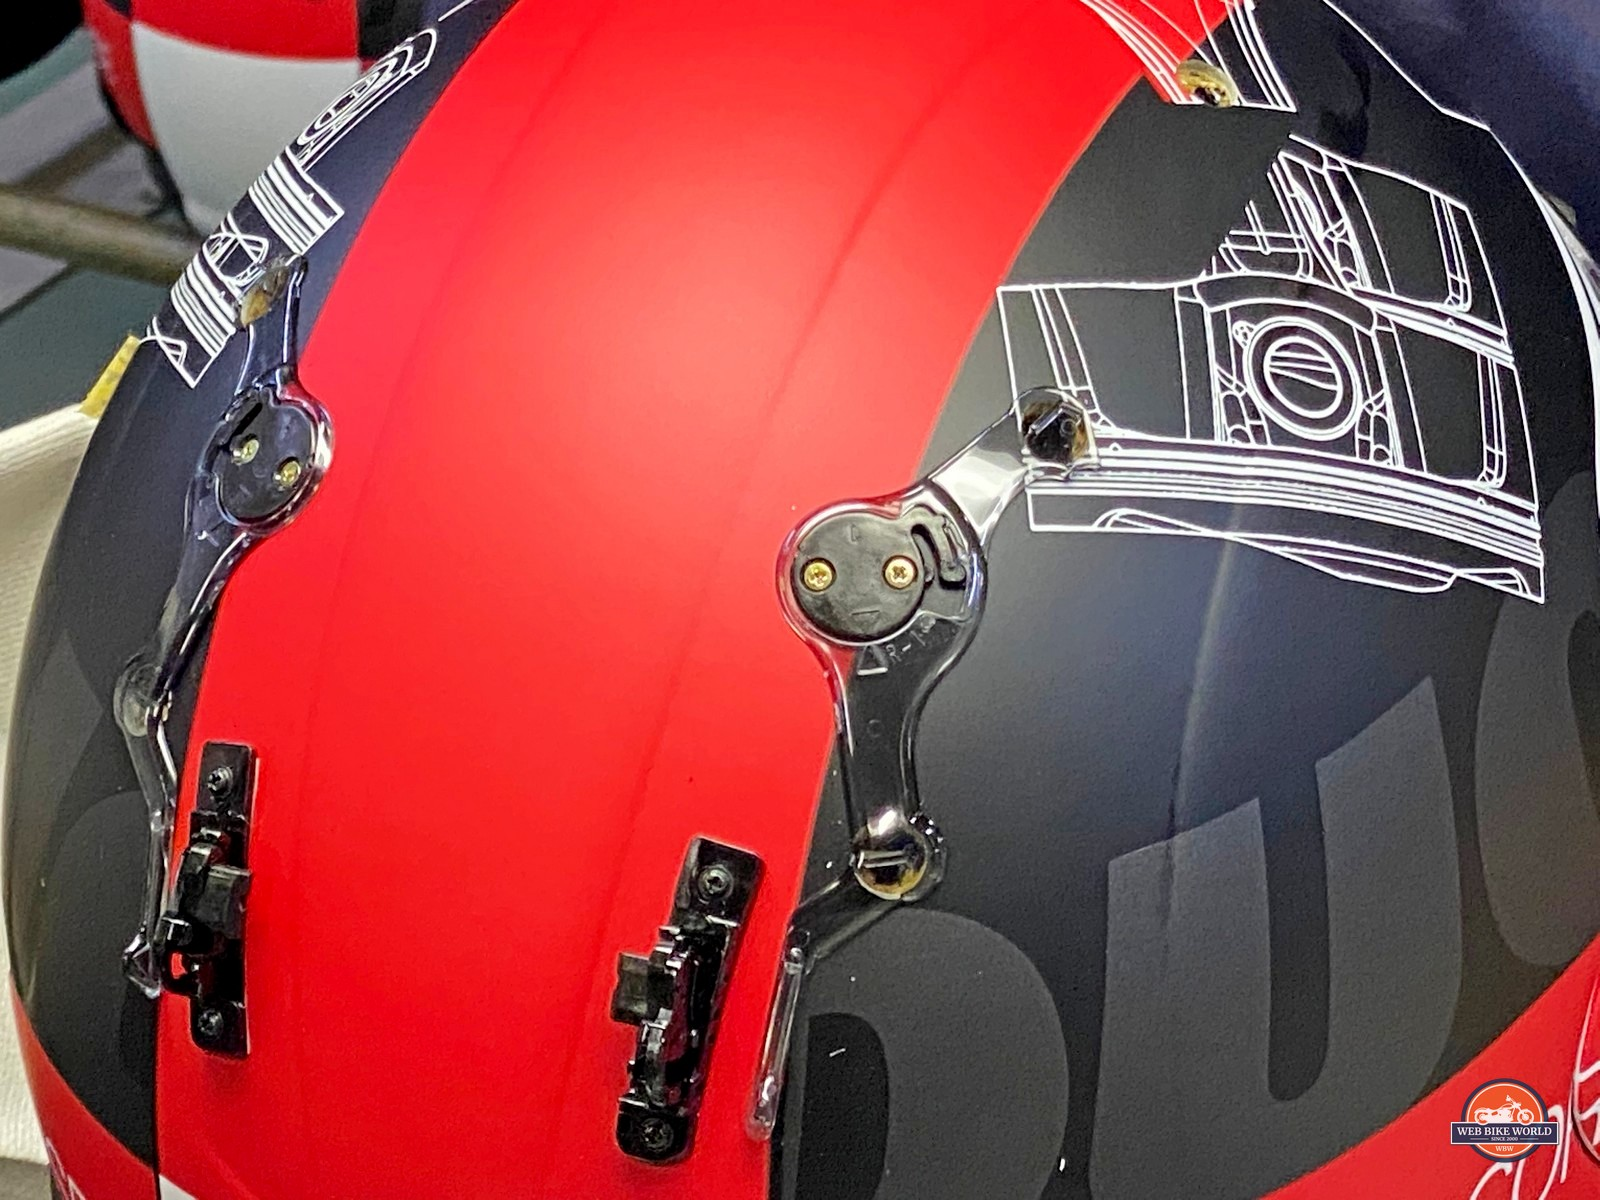 Small screws used to secure diffusers to Arai helmets.